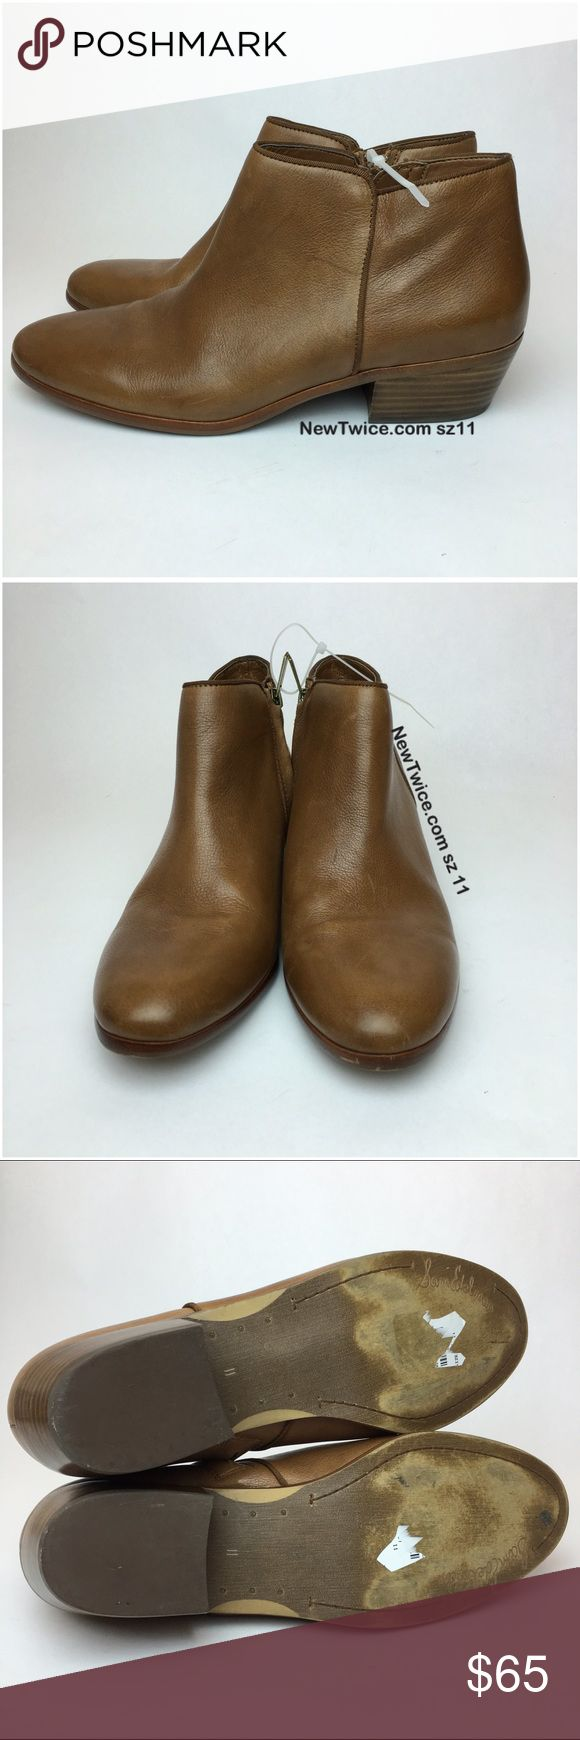 Sam Edelman Petty cognac tan leather ankle bootie Good condition. Leather upper. Side zipper entry. Light scratches from being handled.📸photos are of the actual item📦 We are able to offer you a great price because we don't spend extra money on tissue paper and pretty bows. Our goal is to get the item to you safely and to save the planet!   Please consider our efforts before rating us down for packaging :( Sam Edelman Shoes Ankle Boots & Booties